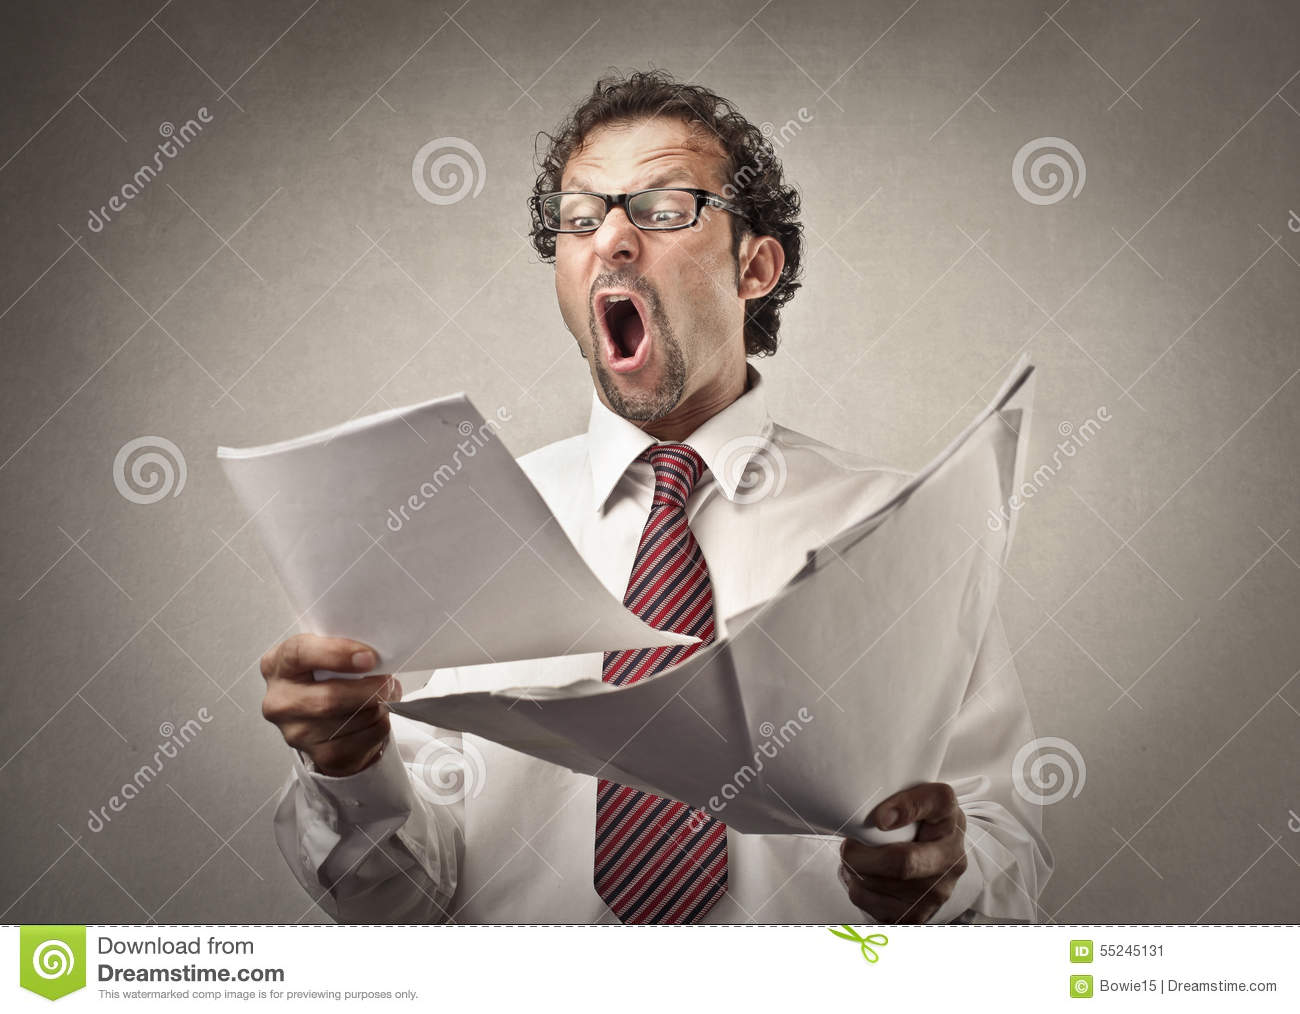 essay on anger and aggression Anger and aggression: an essay on emotion action amok analysis and/or anger and aggression anger and annoyance angry episode angry person annoyed appraised.